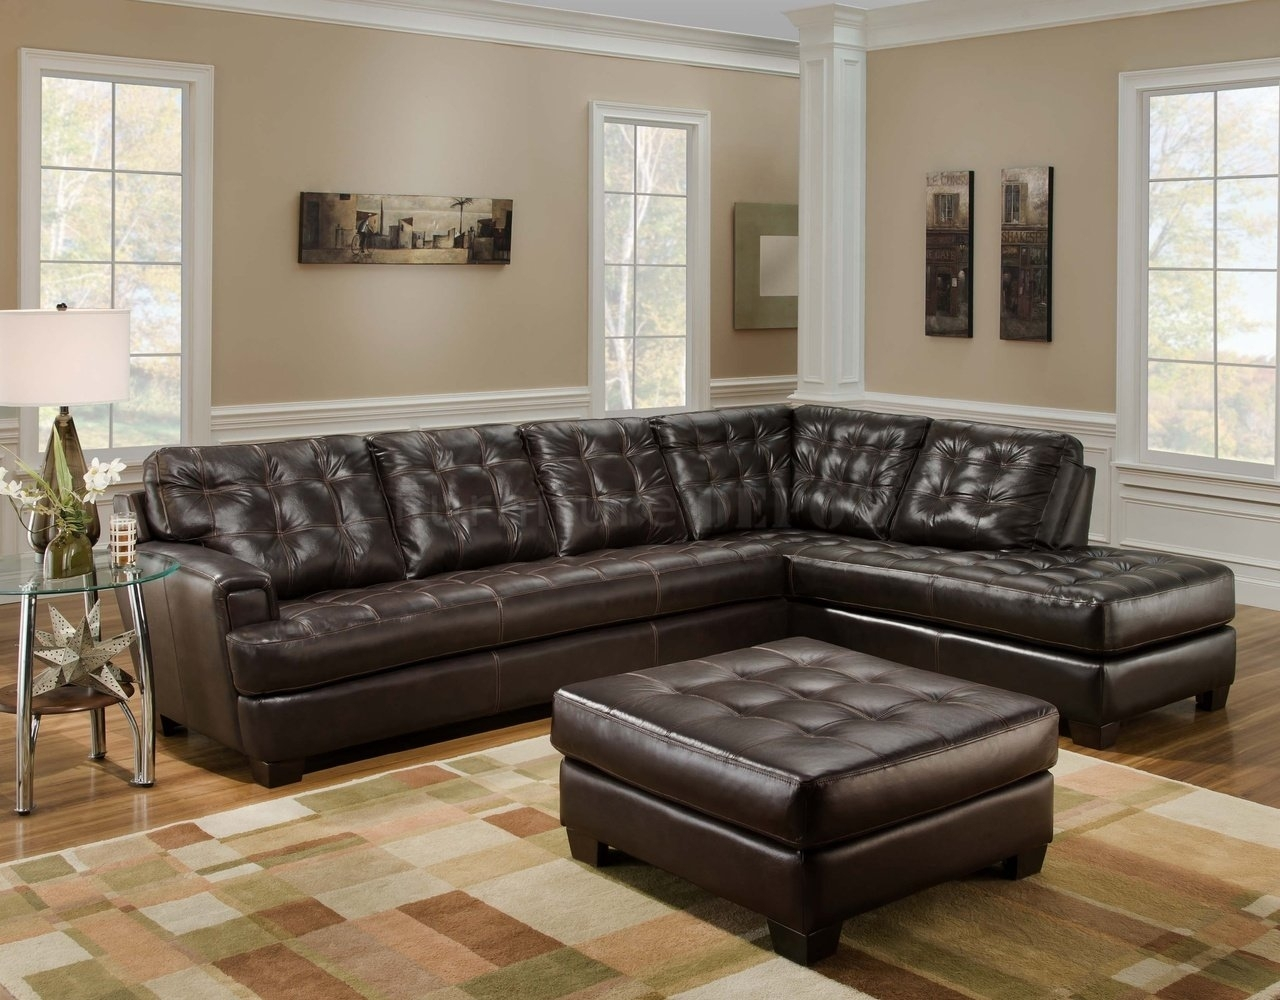 Sectional Sofa Design: Awesome Leather Sectional Sleeper Sofa for Leather Sectionals With Ottoman (Image 12 of 15)